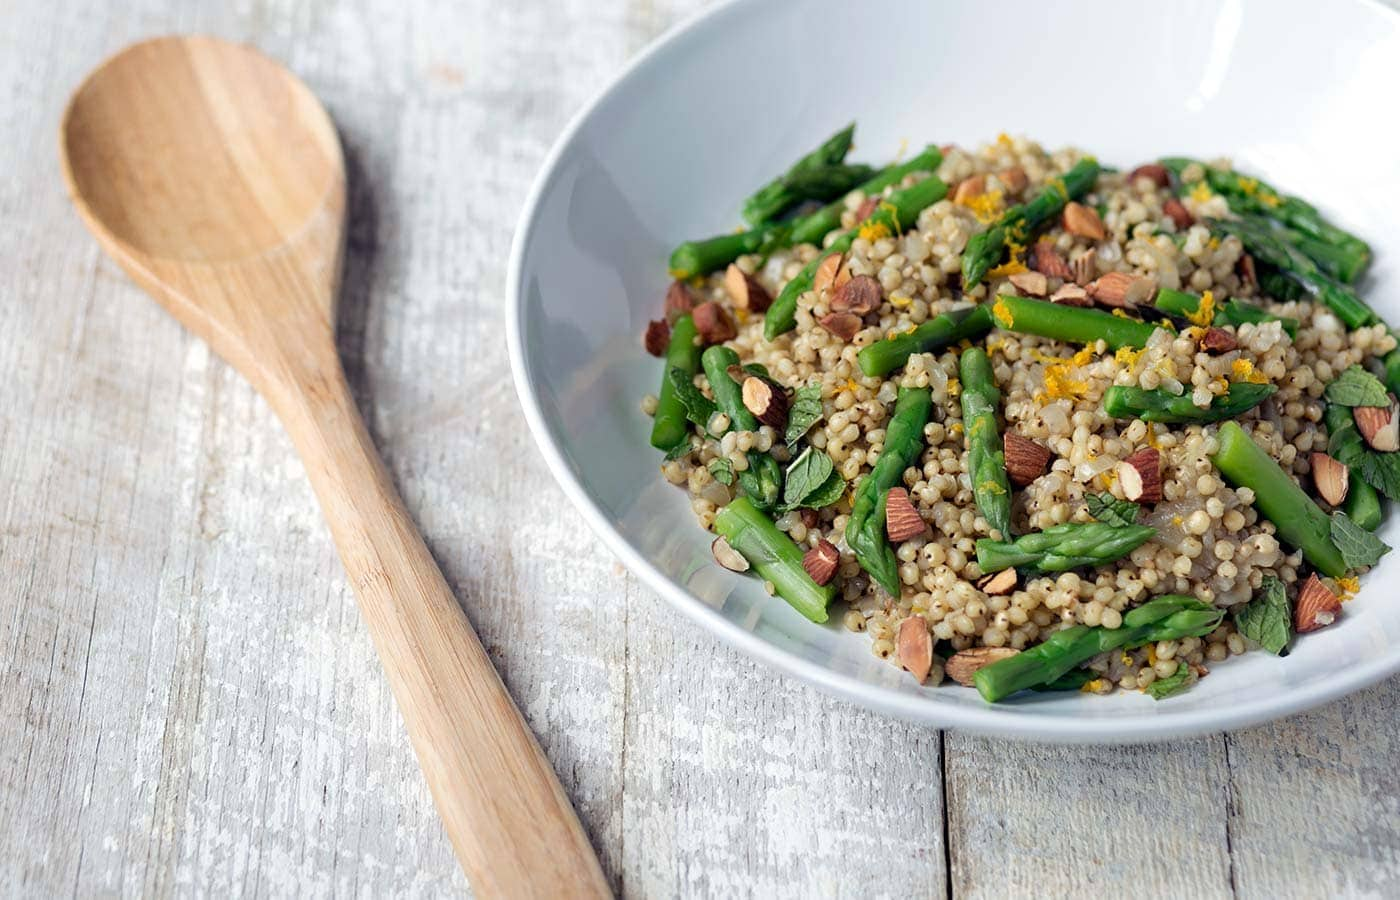 This flavorful Sorghum, Orange and Asparagus Salad is perfect as a side dish. It can also be served in larger portions for a healthy, gluten-free, vegetarian meal! SavorySimple.net